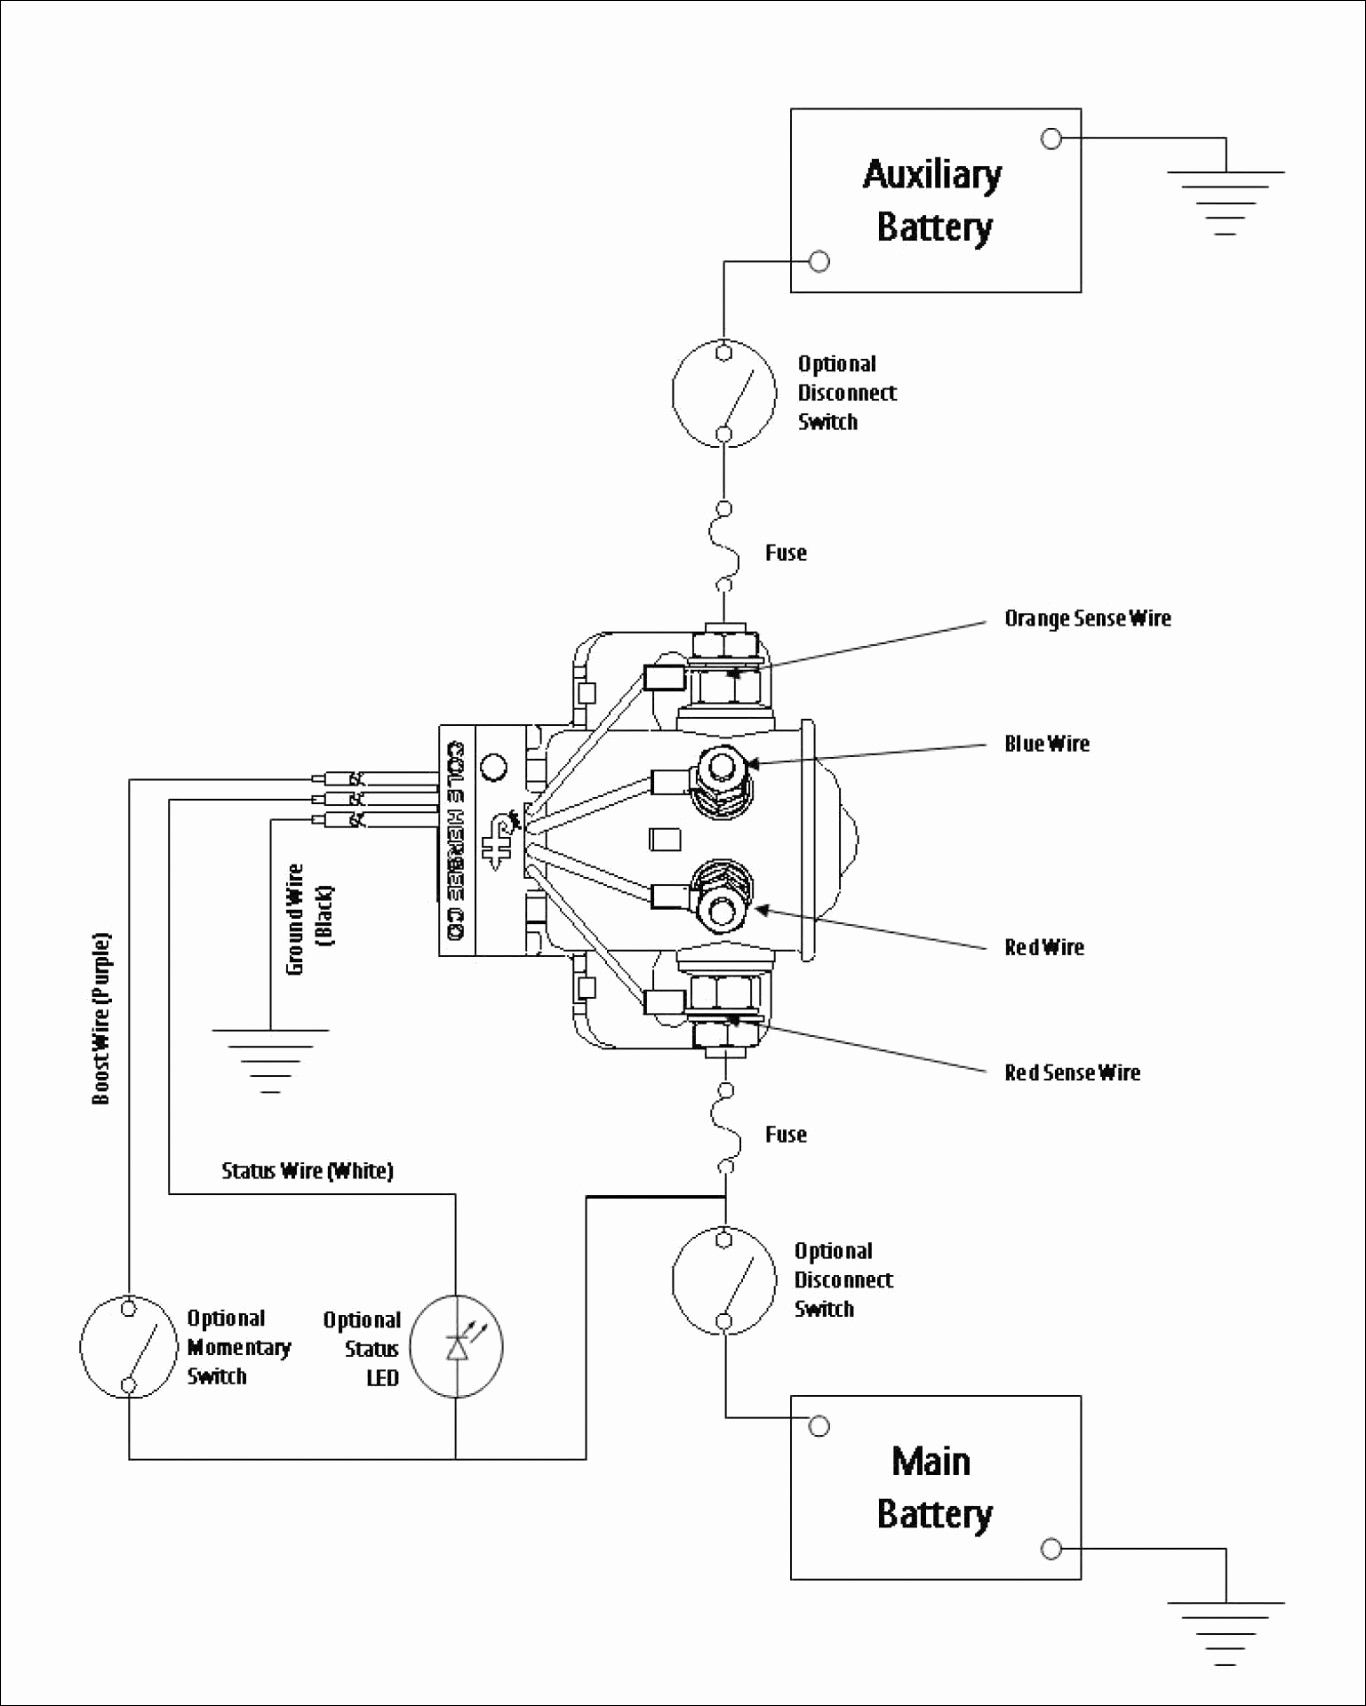 3 Position Rotary Switch Wiring Diagram In 2020 Electrical Wiring Diagram Diagram Boat Wiring